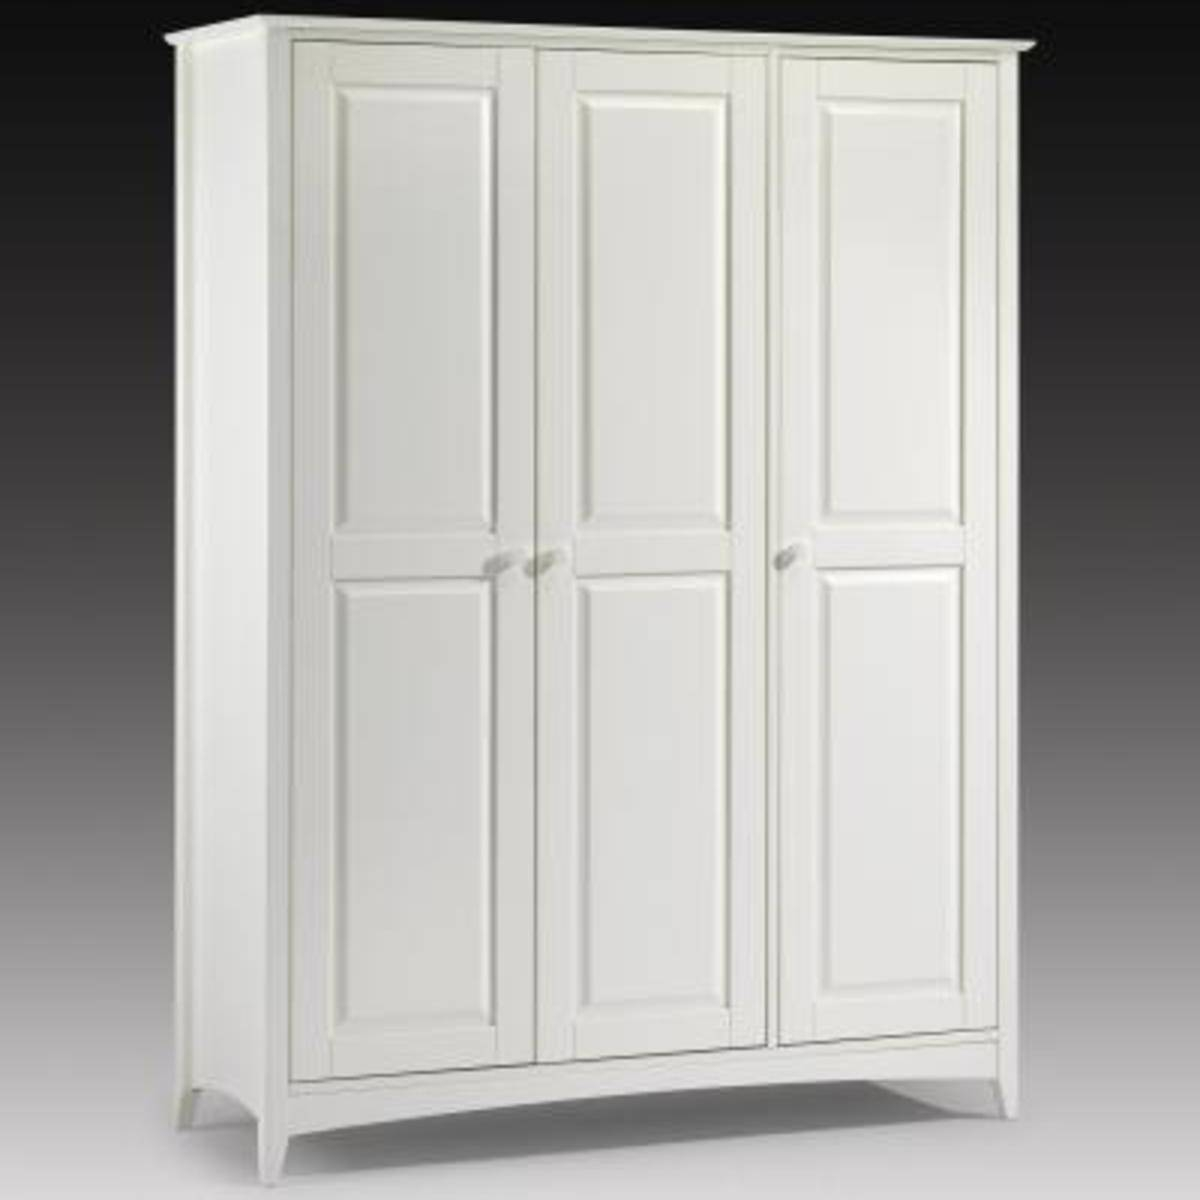 Cheap Wardrobe In White Lacquer |2 Door Wardrobe | Robinsons Beds for 3 Door White Wardrobes (Image 5 of 30)